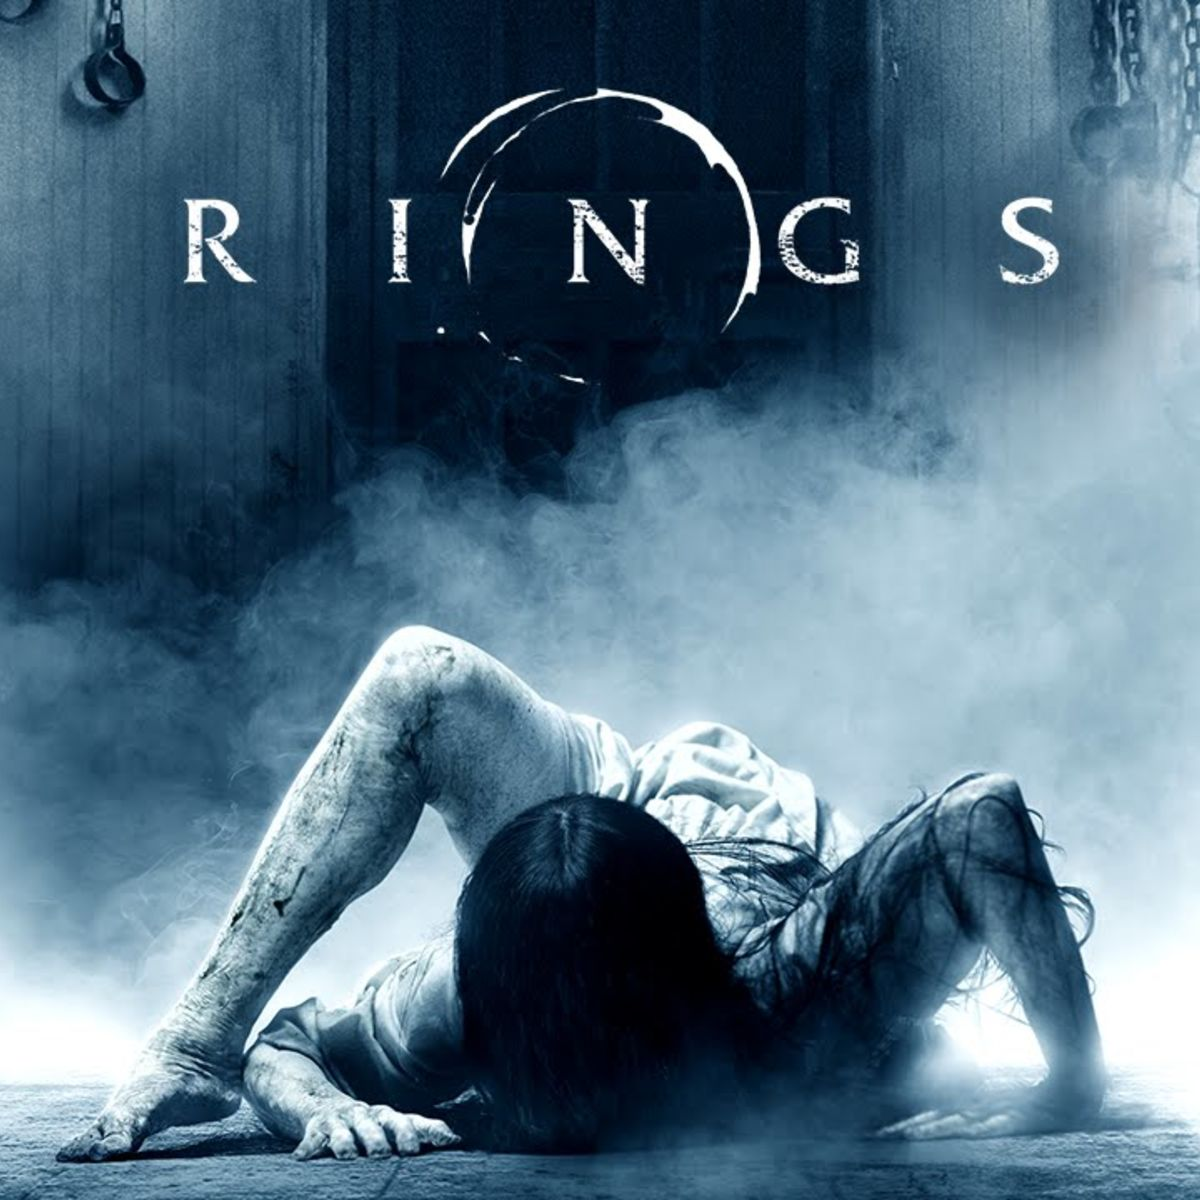 Samara is coming for you in latest movie trailer for Rings - Syfy Wire